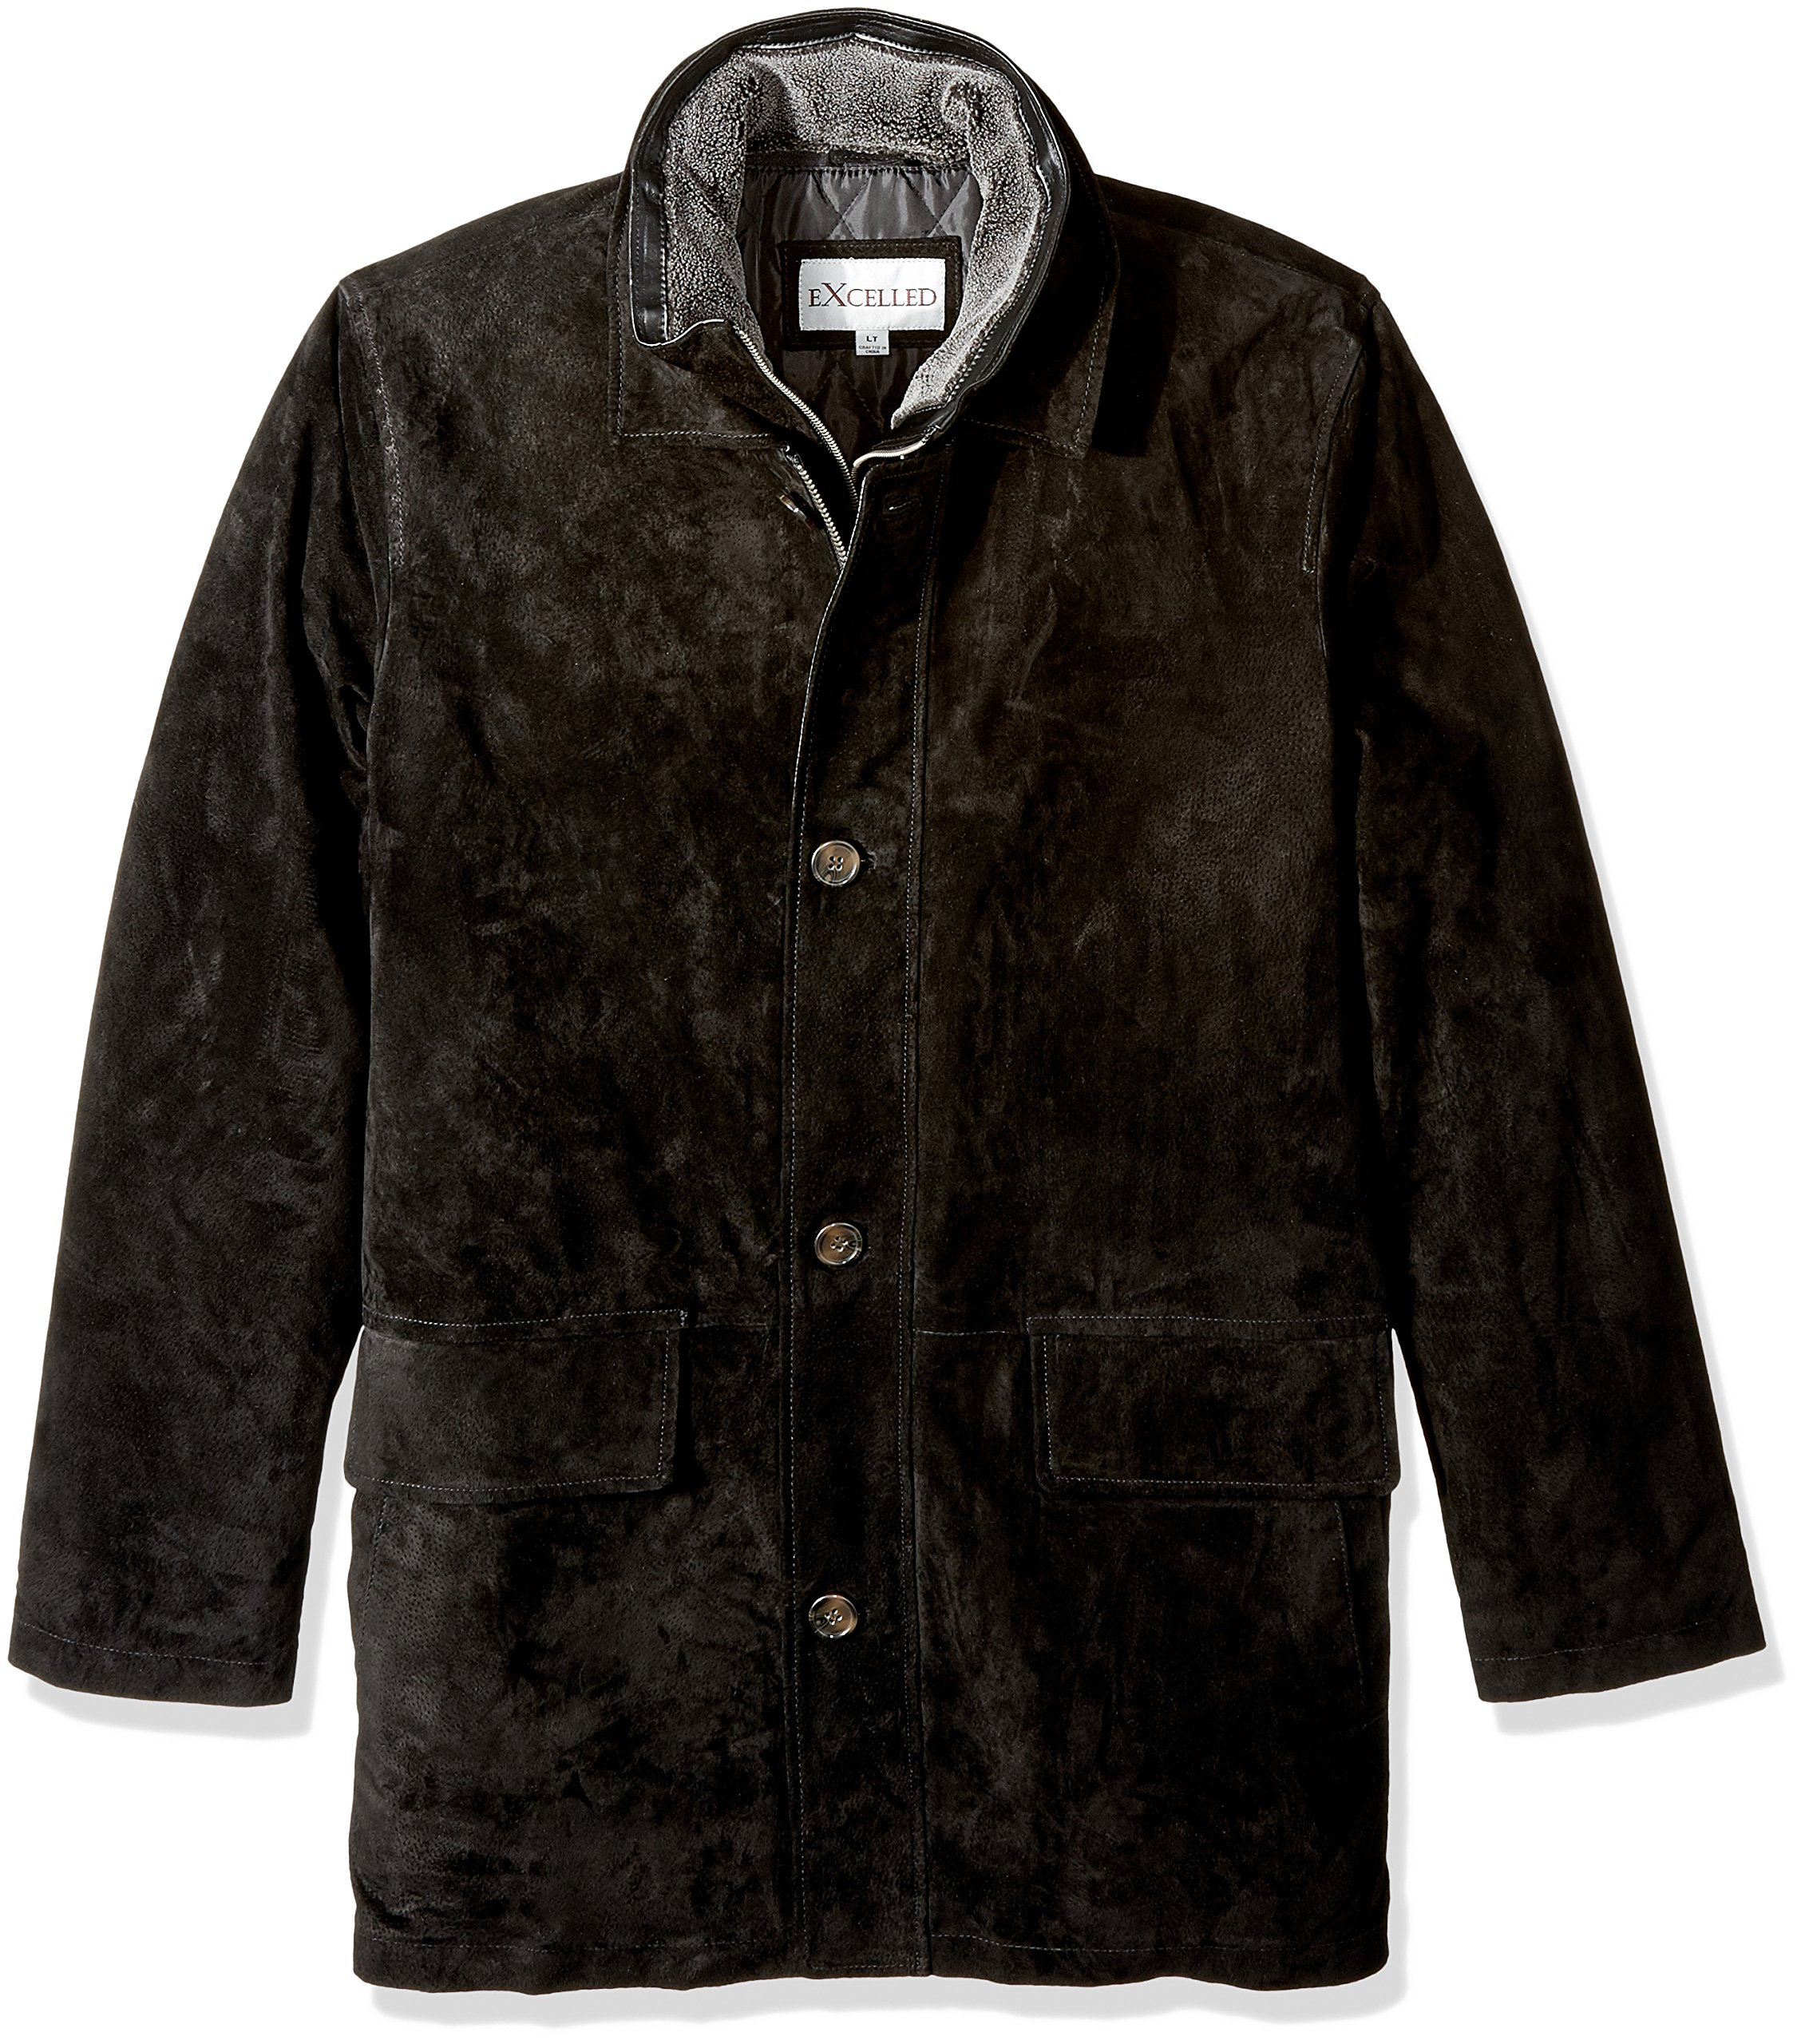 Excelled Men's Big and Tall Suede Feel Jacket, Black, XLT